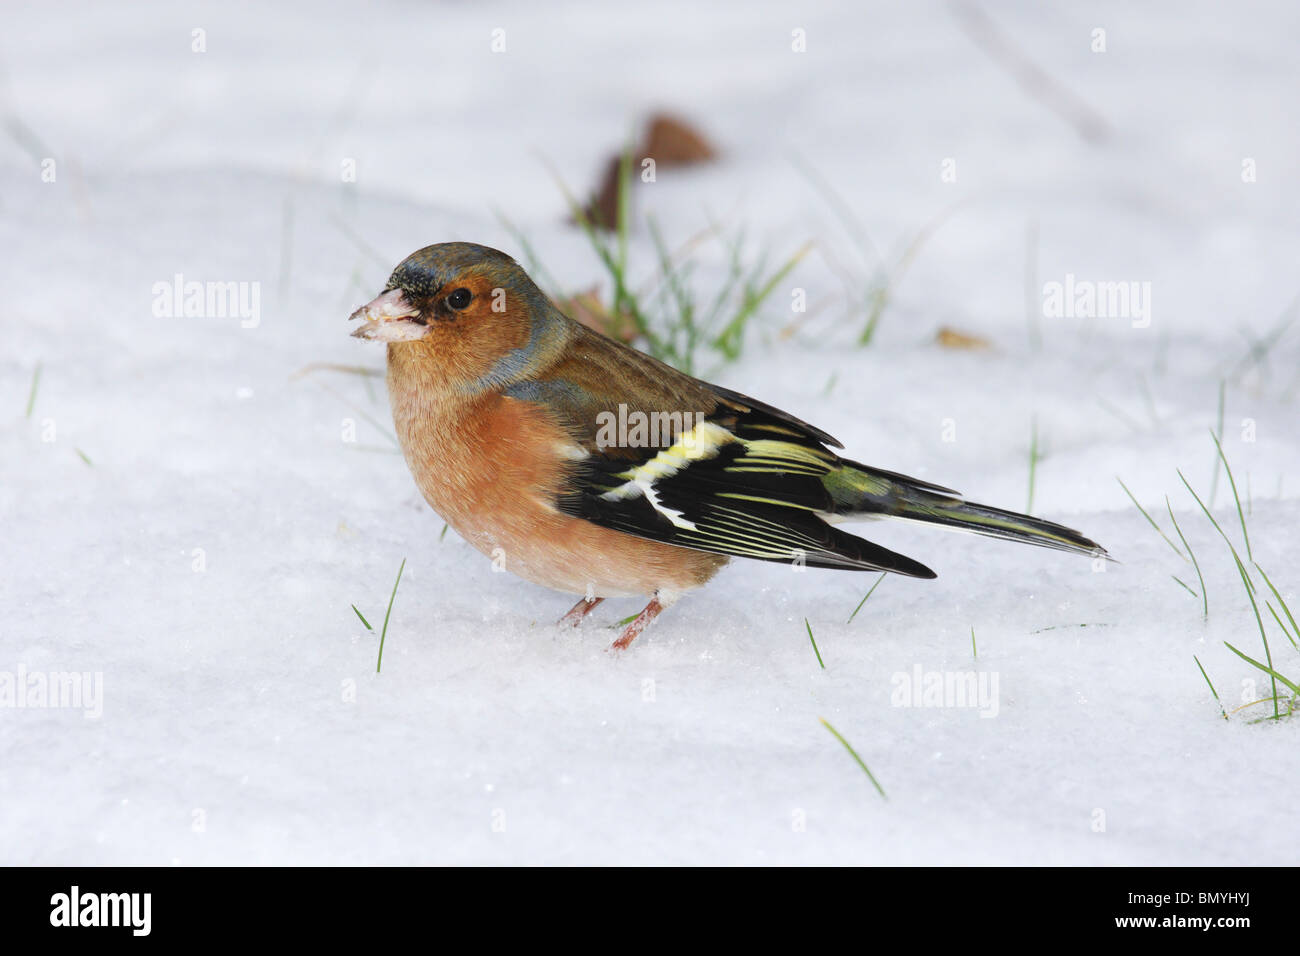 Chaffinch in the snow / Fringilla coelebs - Stock Image